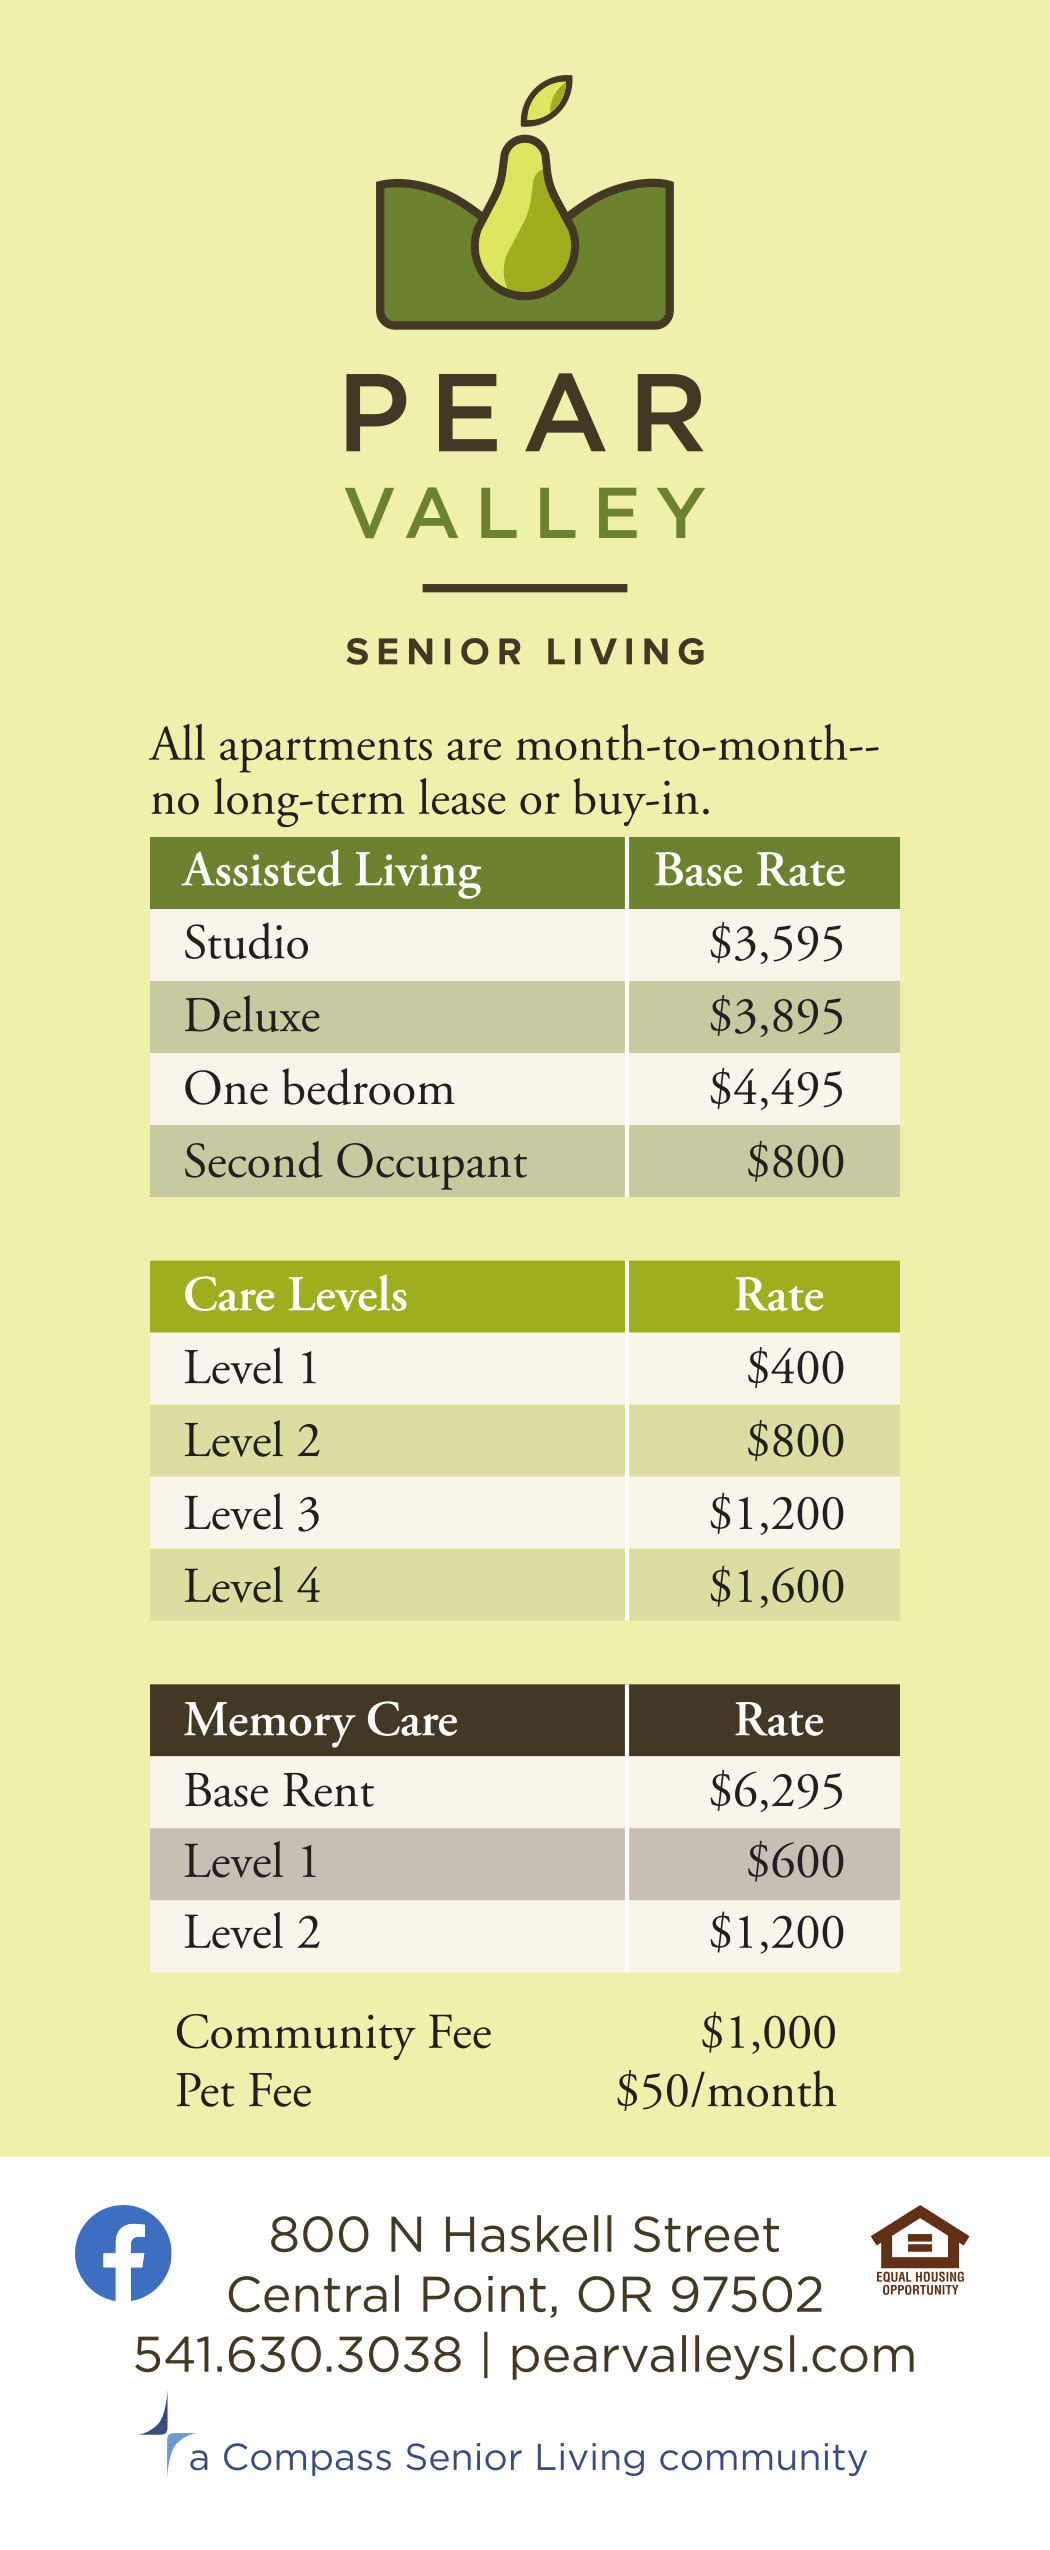 Rate sheet for Pear Valley Senior Living in Central Point, Oregon